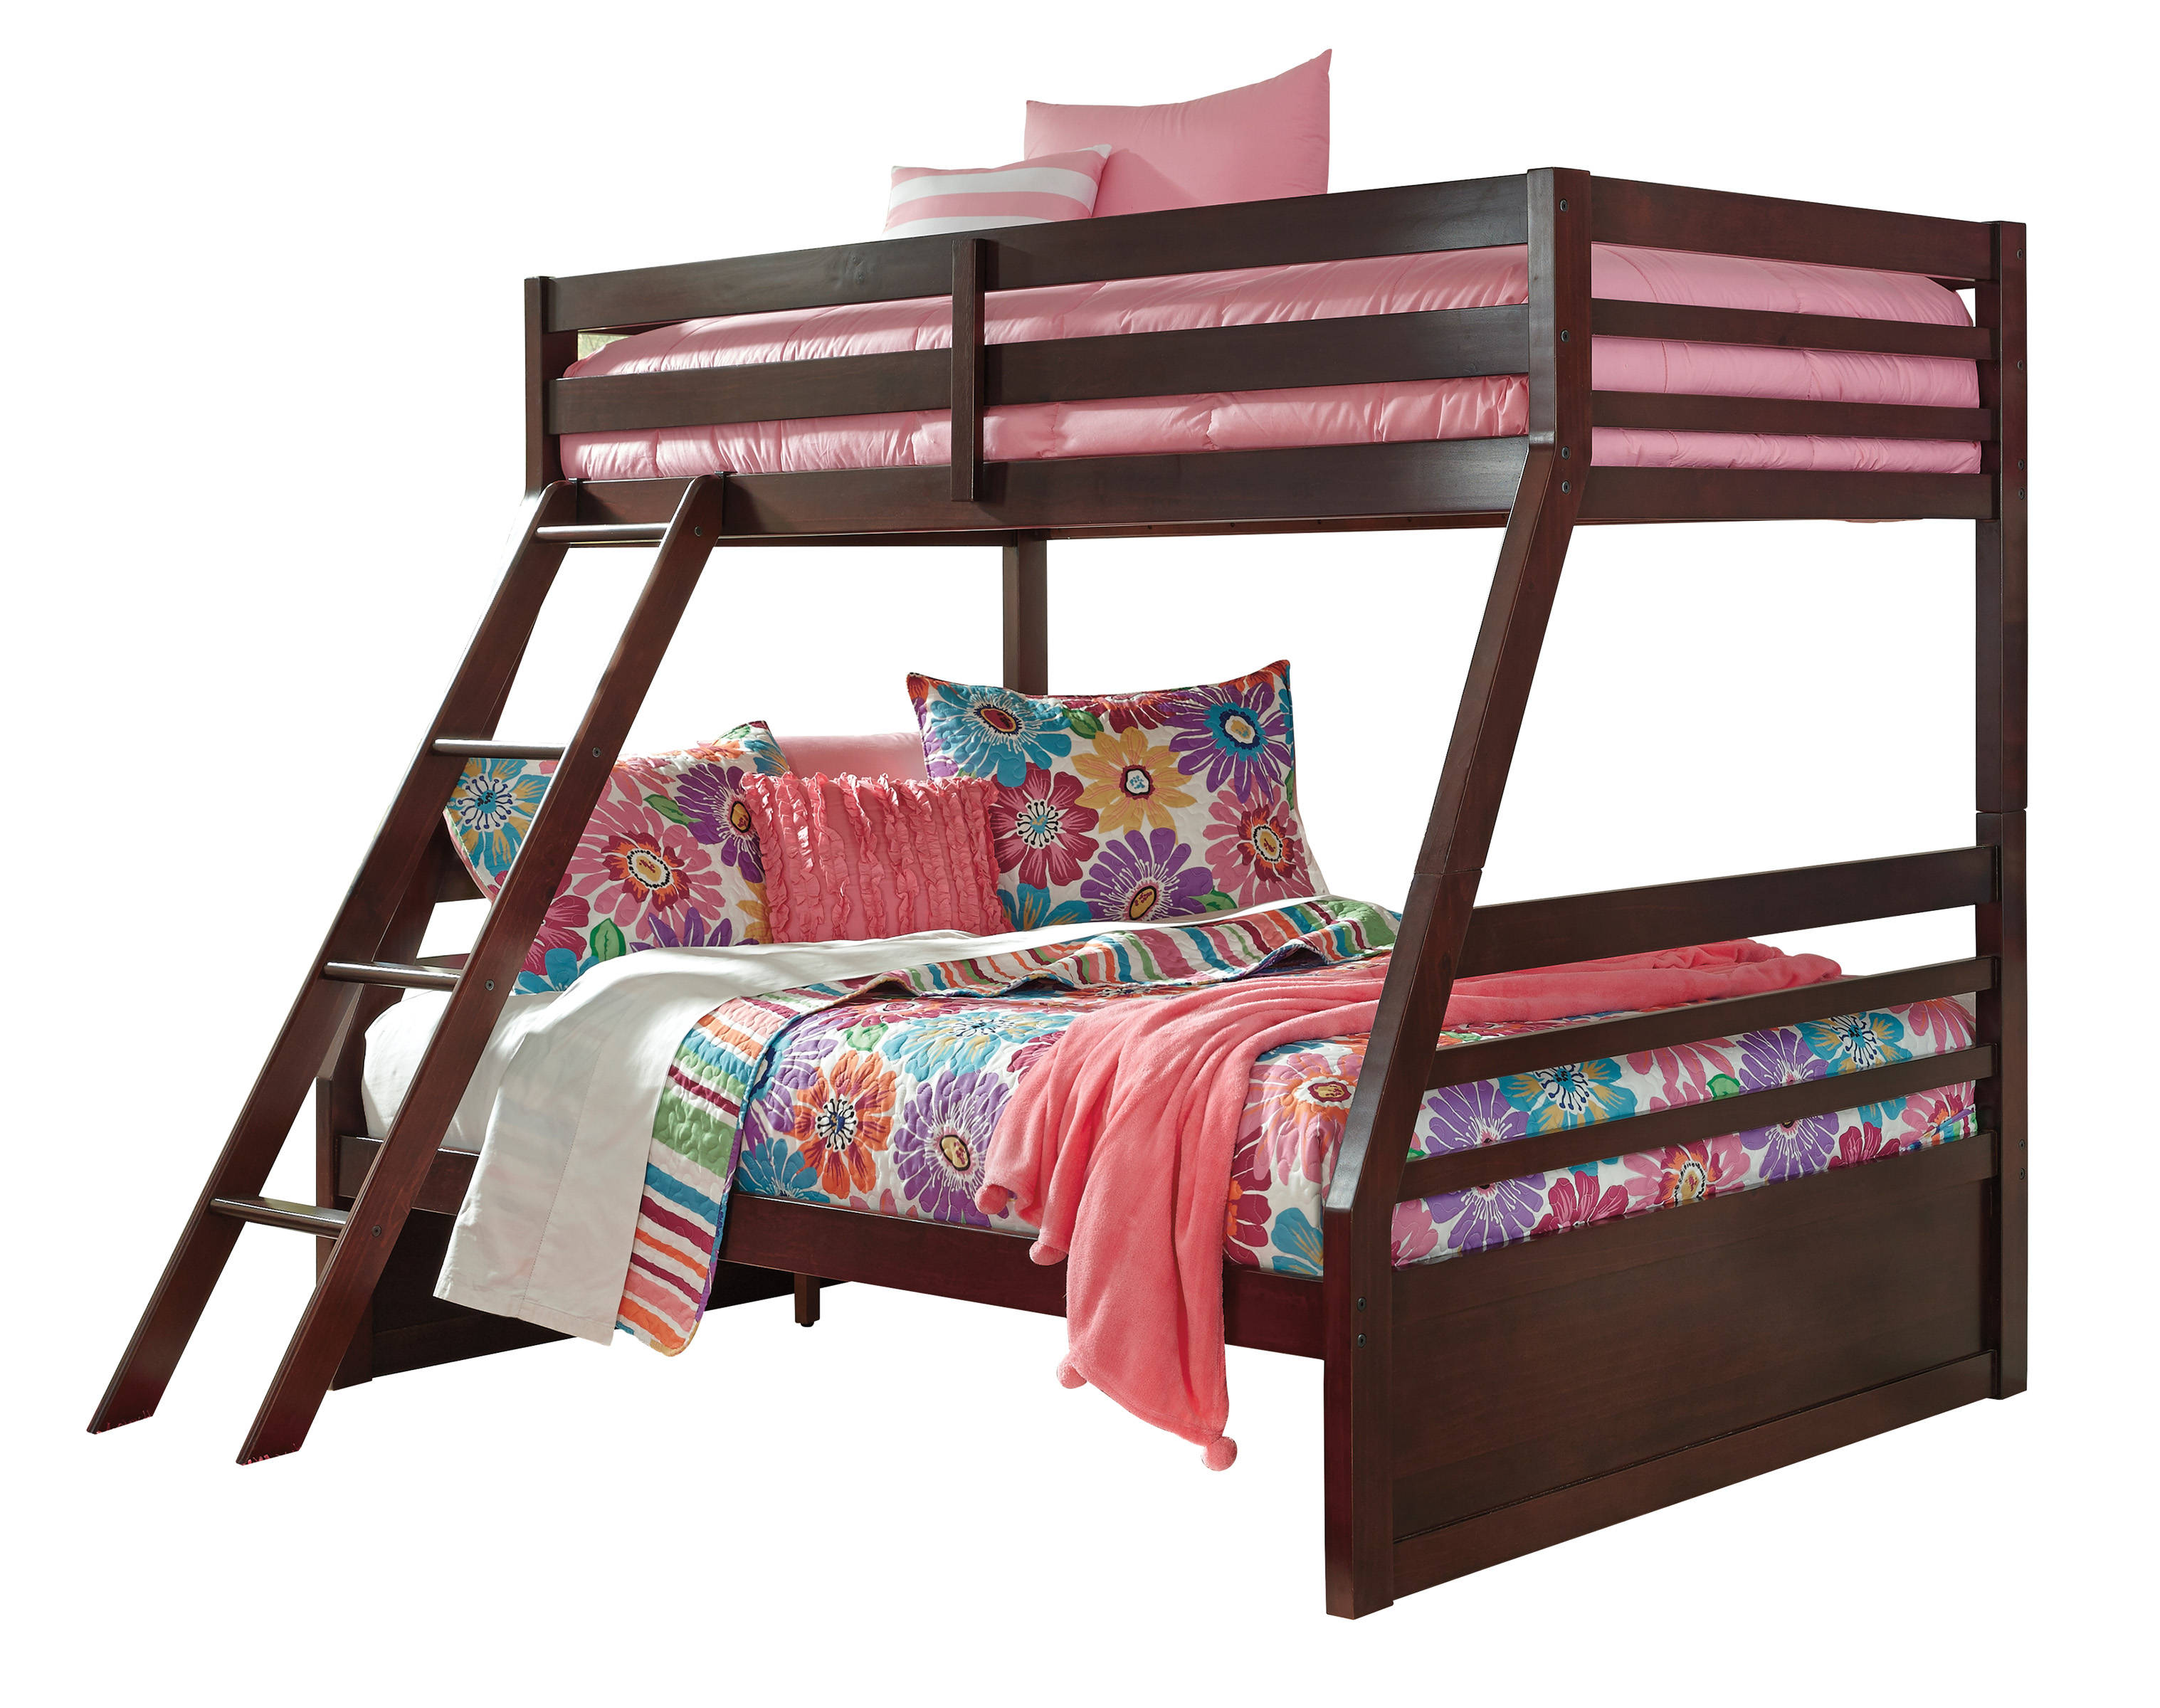 Ashley Furniture Halanton Twin Over Full Bunk Bed The Classy Home